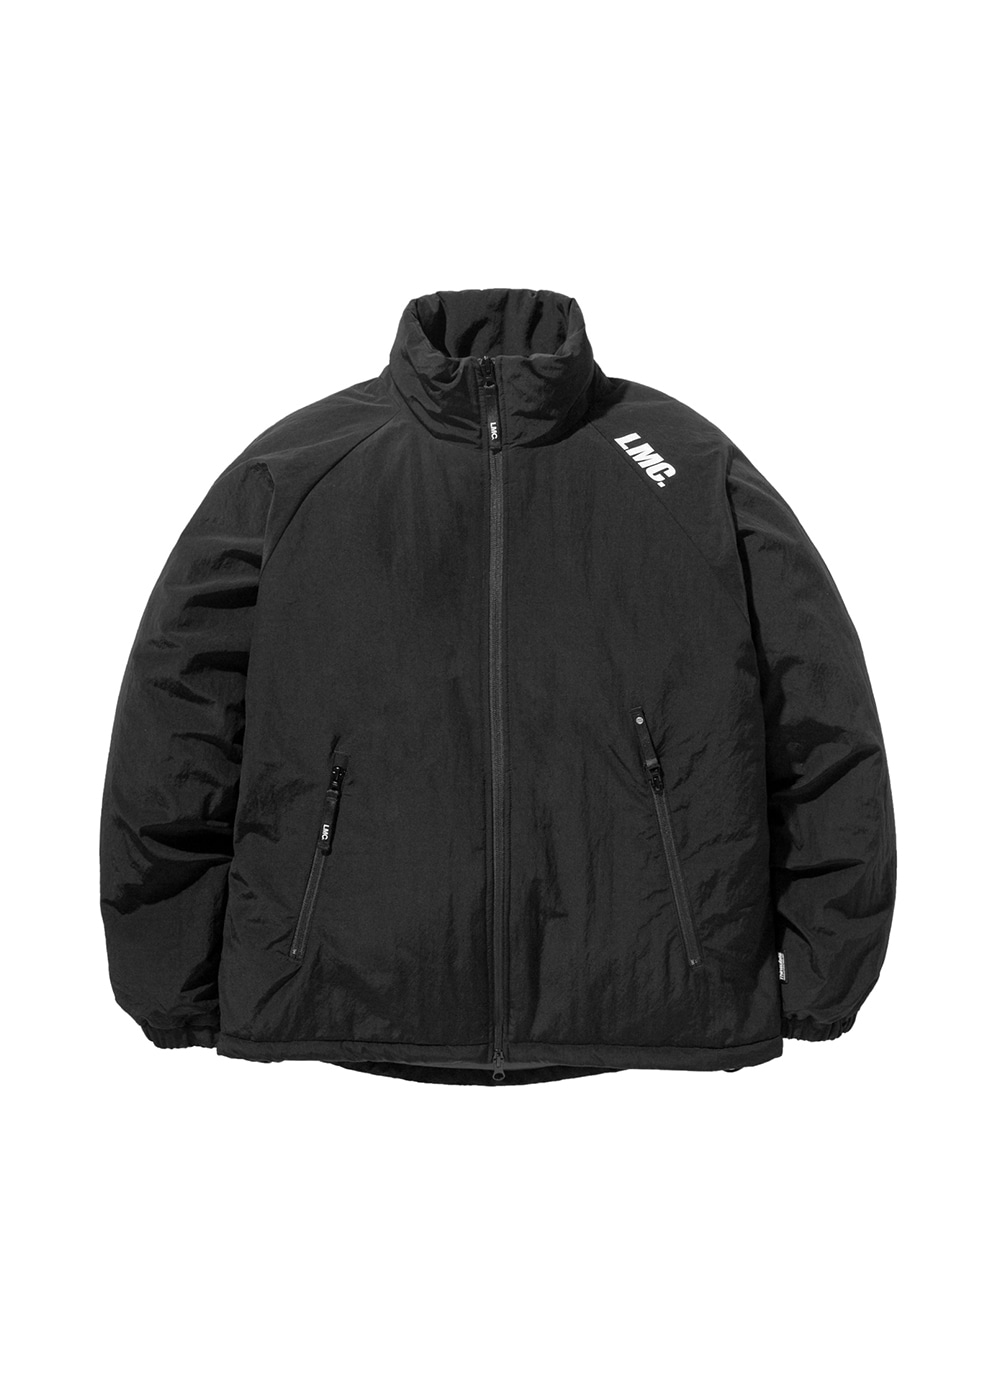 LMC FN LEVEL7 THINSULATE PARKA black